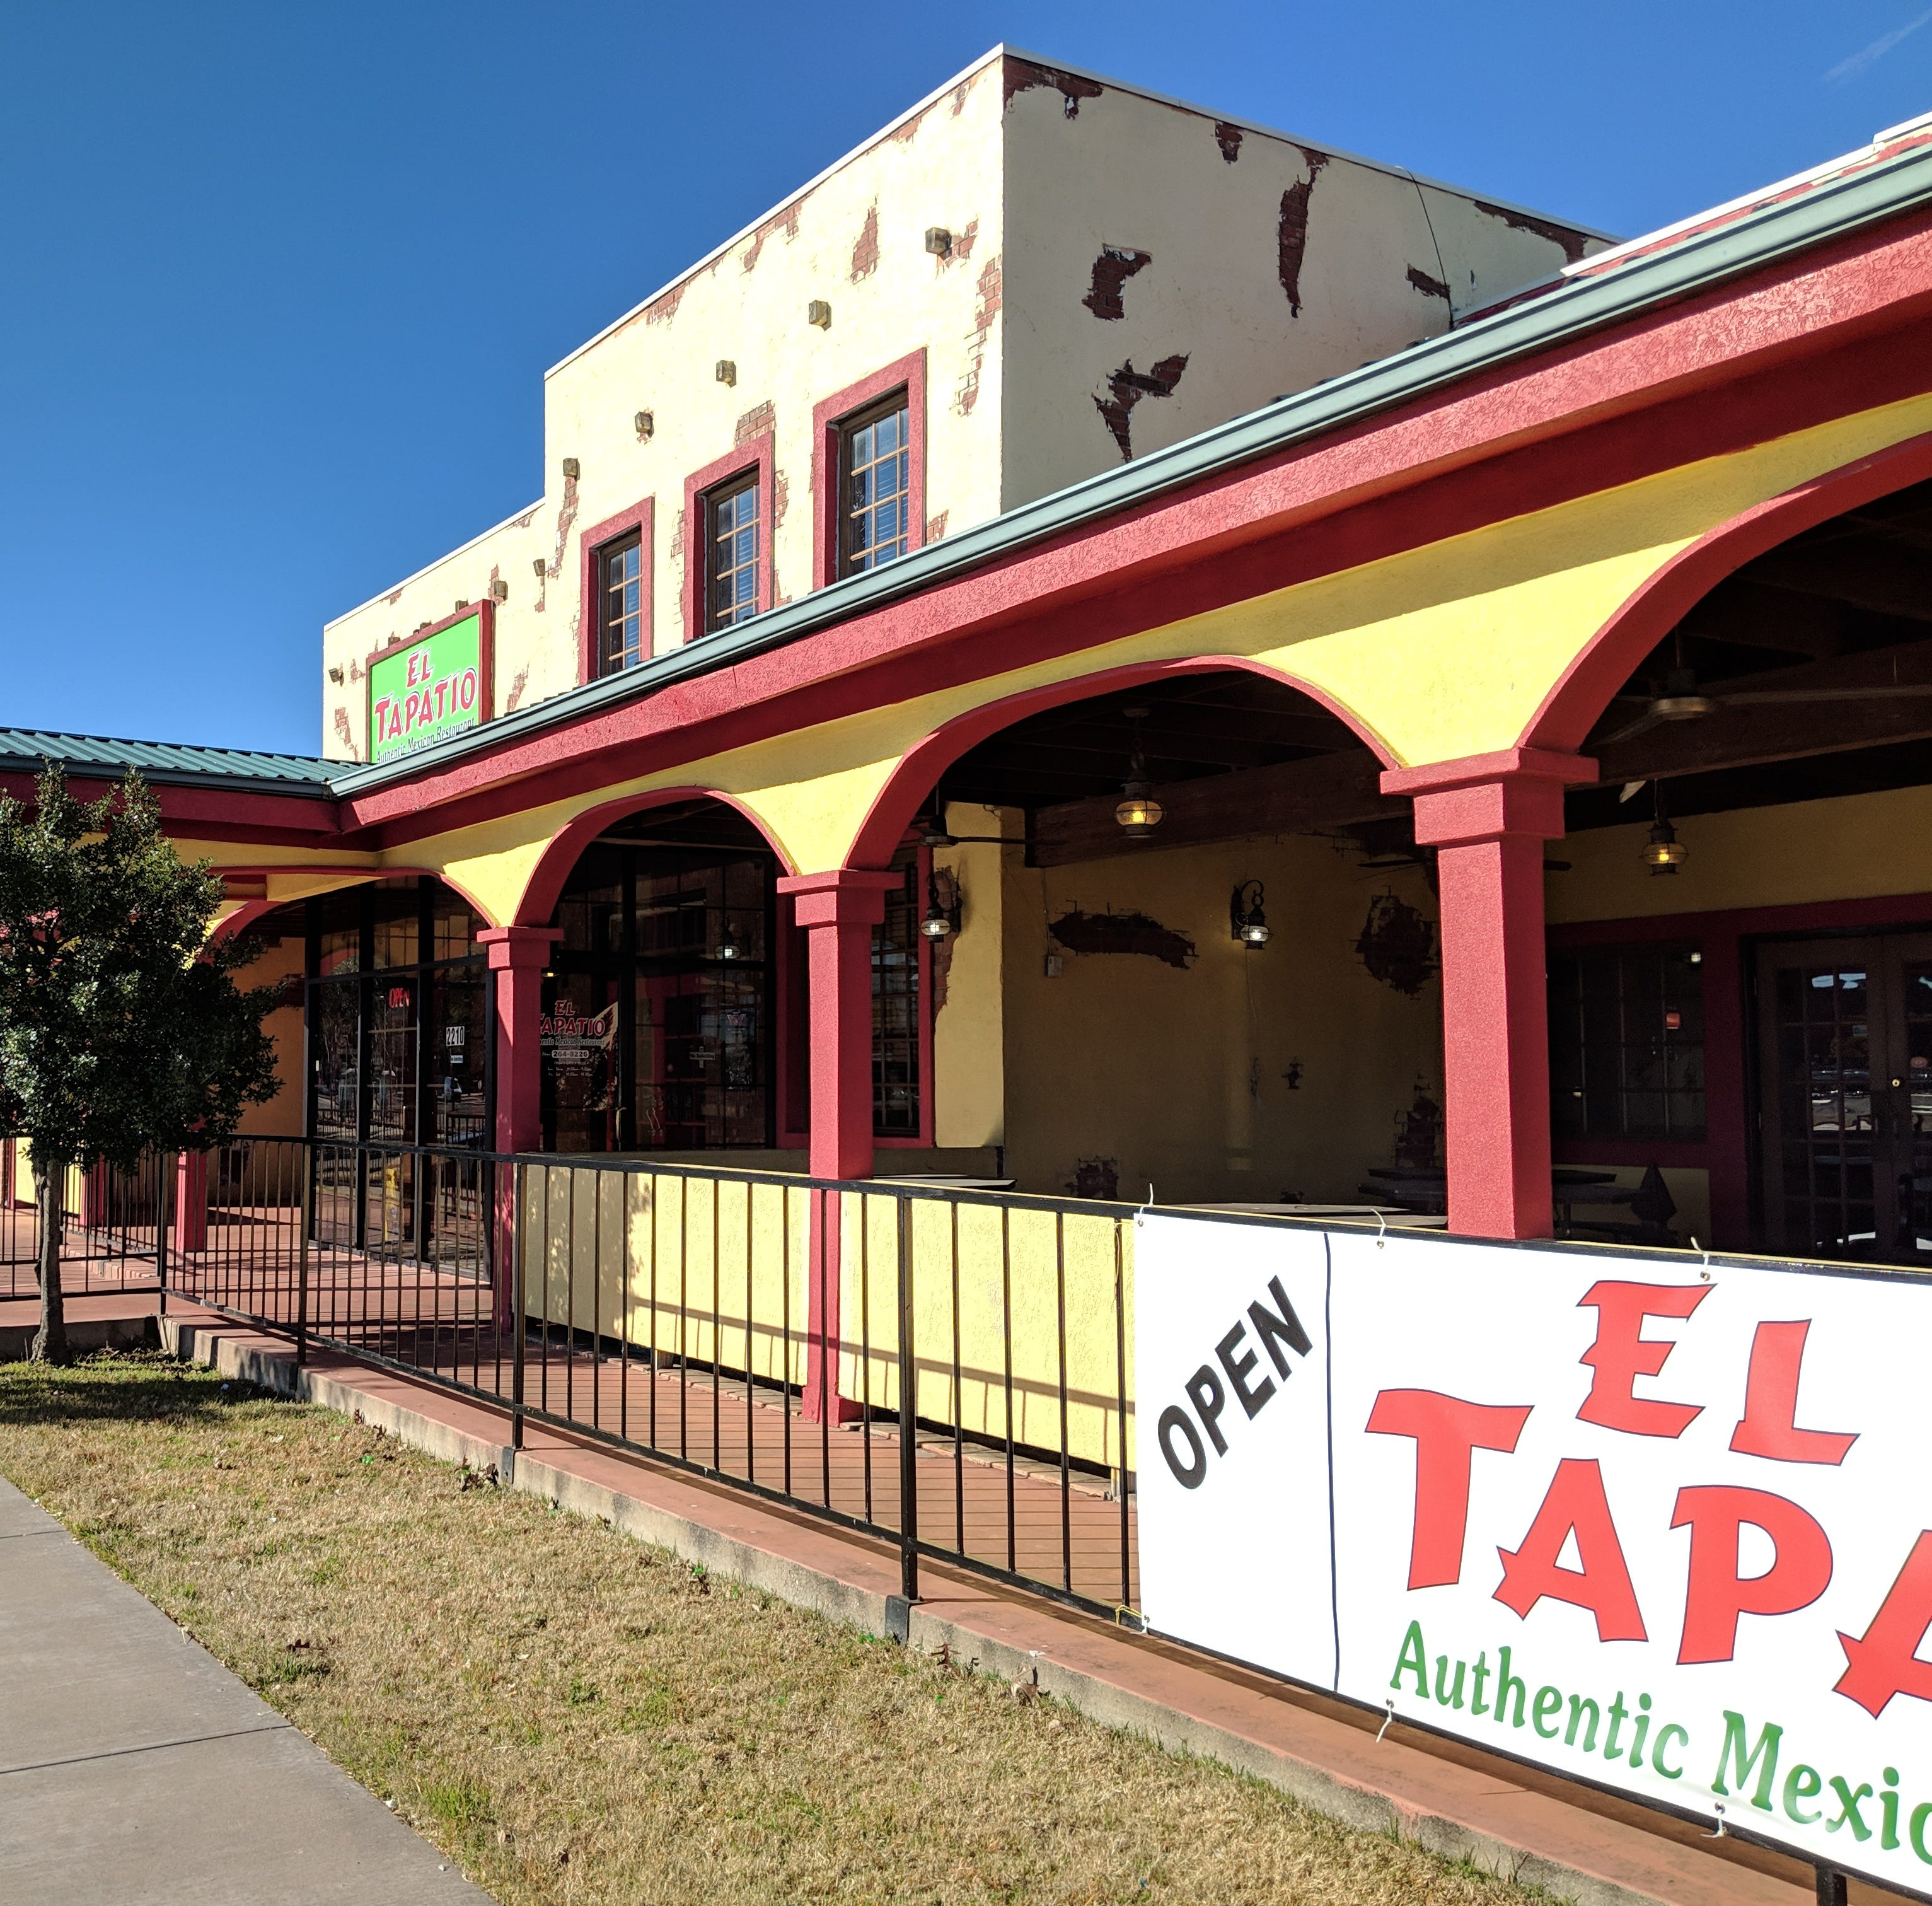 Great food found at El Tapatío